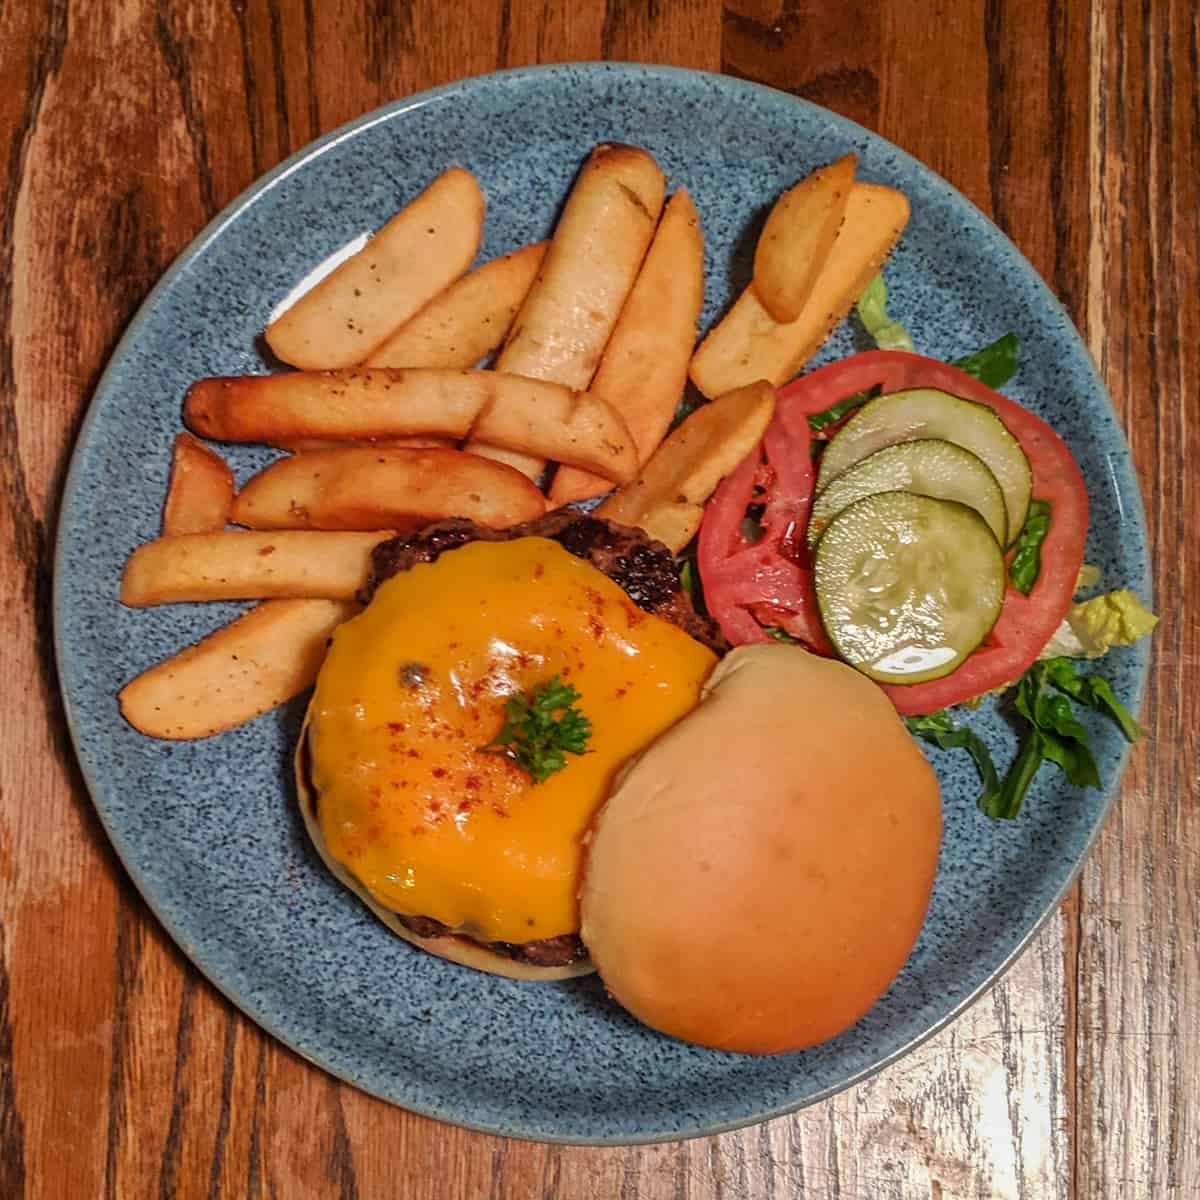 FourWay cheeseburger with soft cheddar